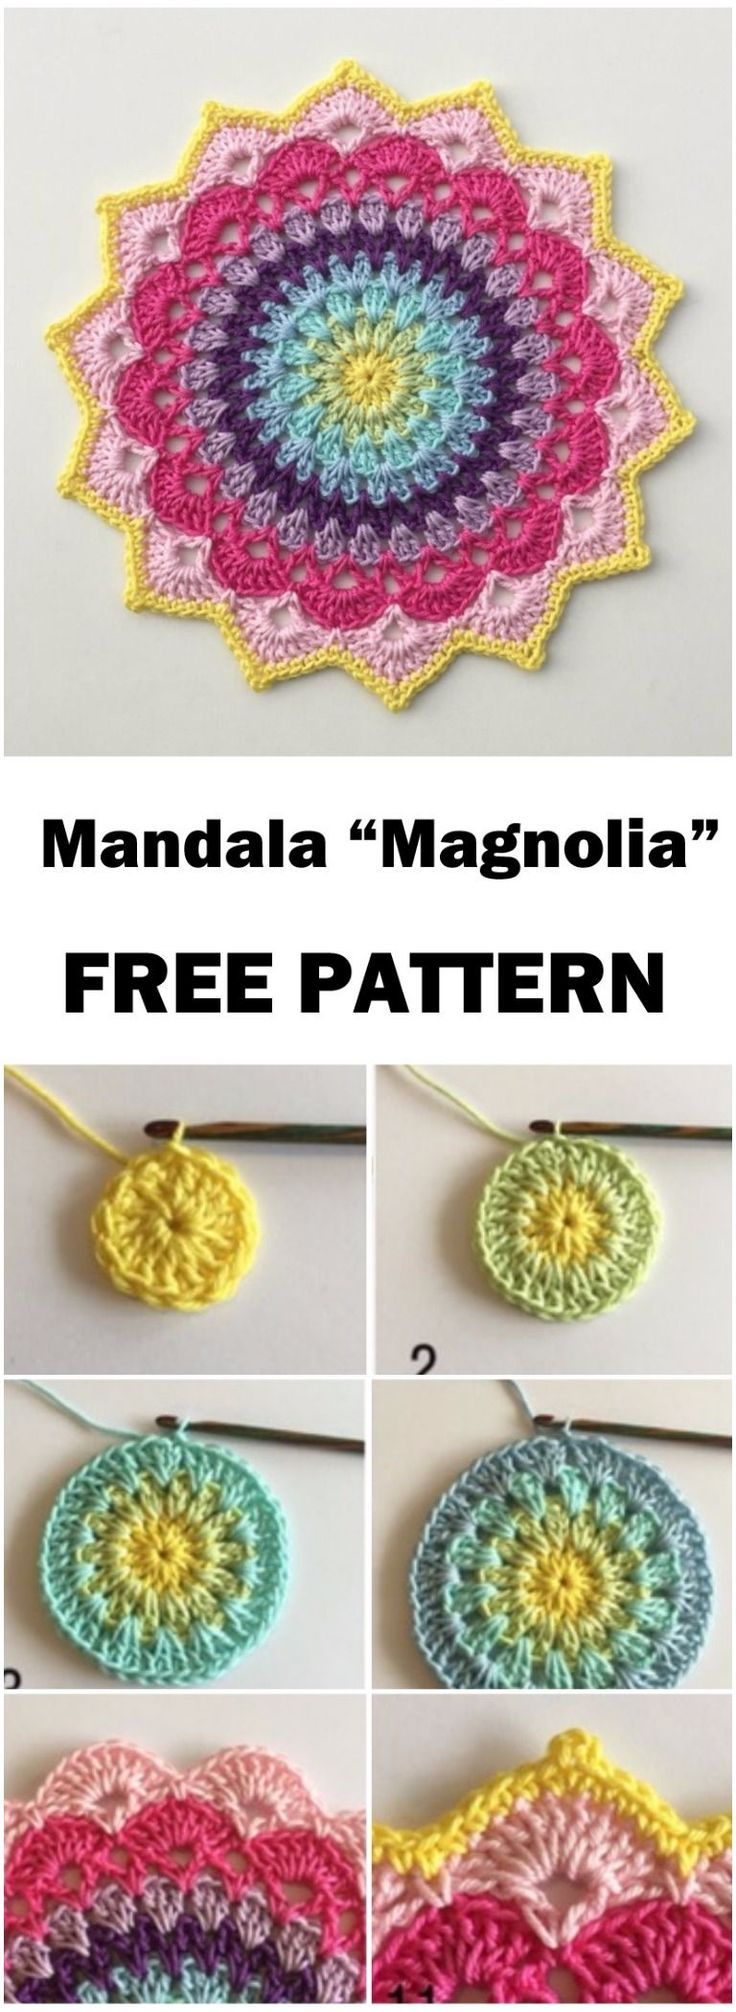 920 best Crochet images on Pinterest | Crochet patterns, Crocheting ...